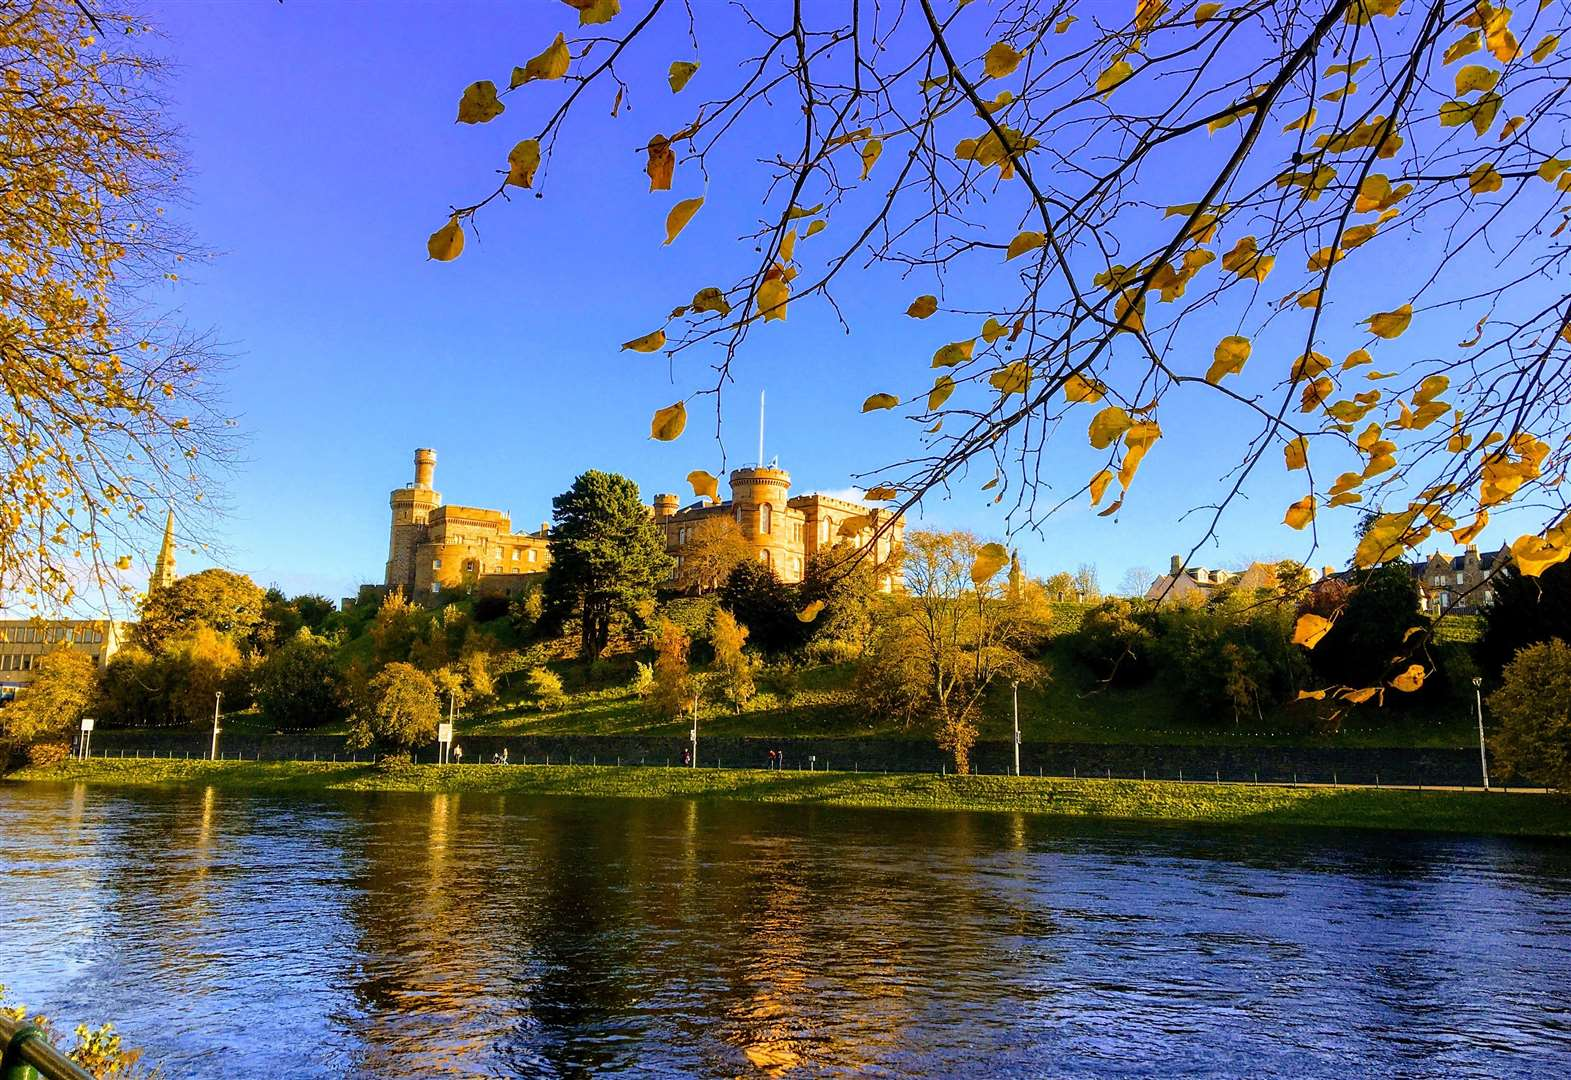 Inverness named one of the most welcoming places in the UK